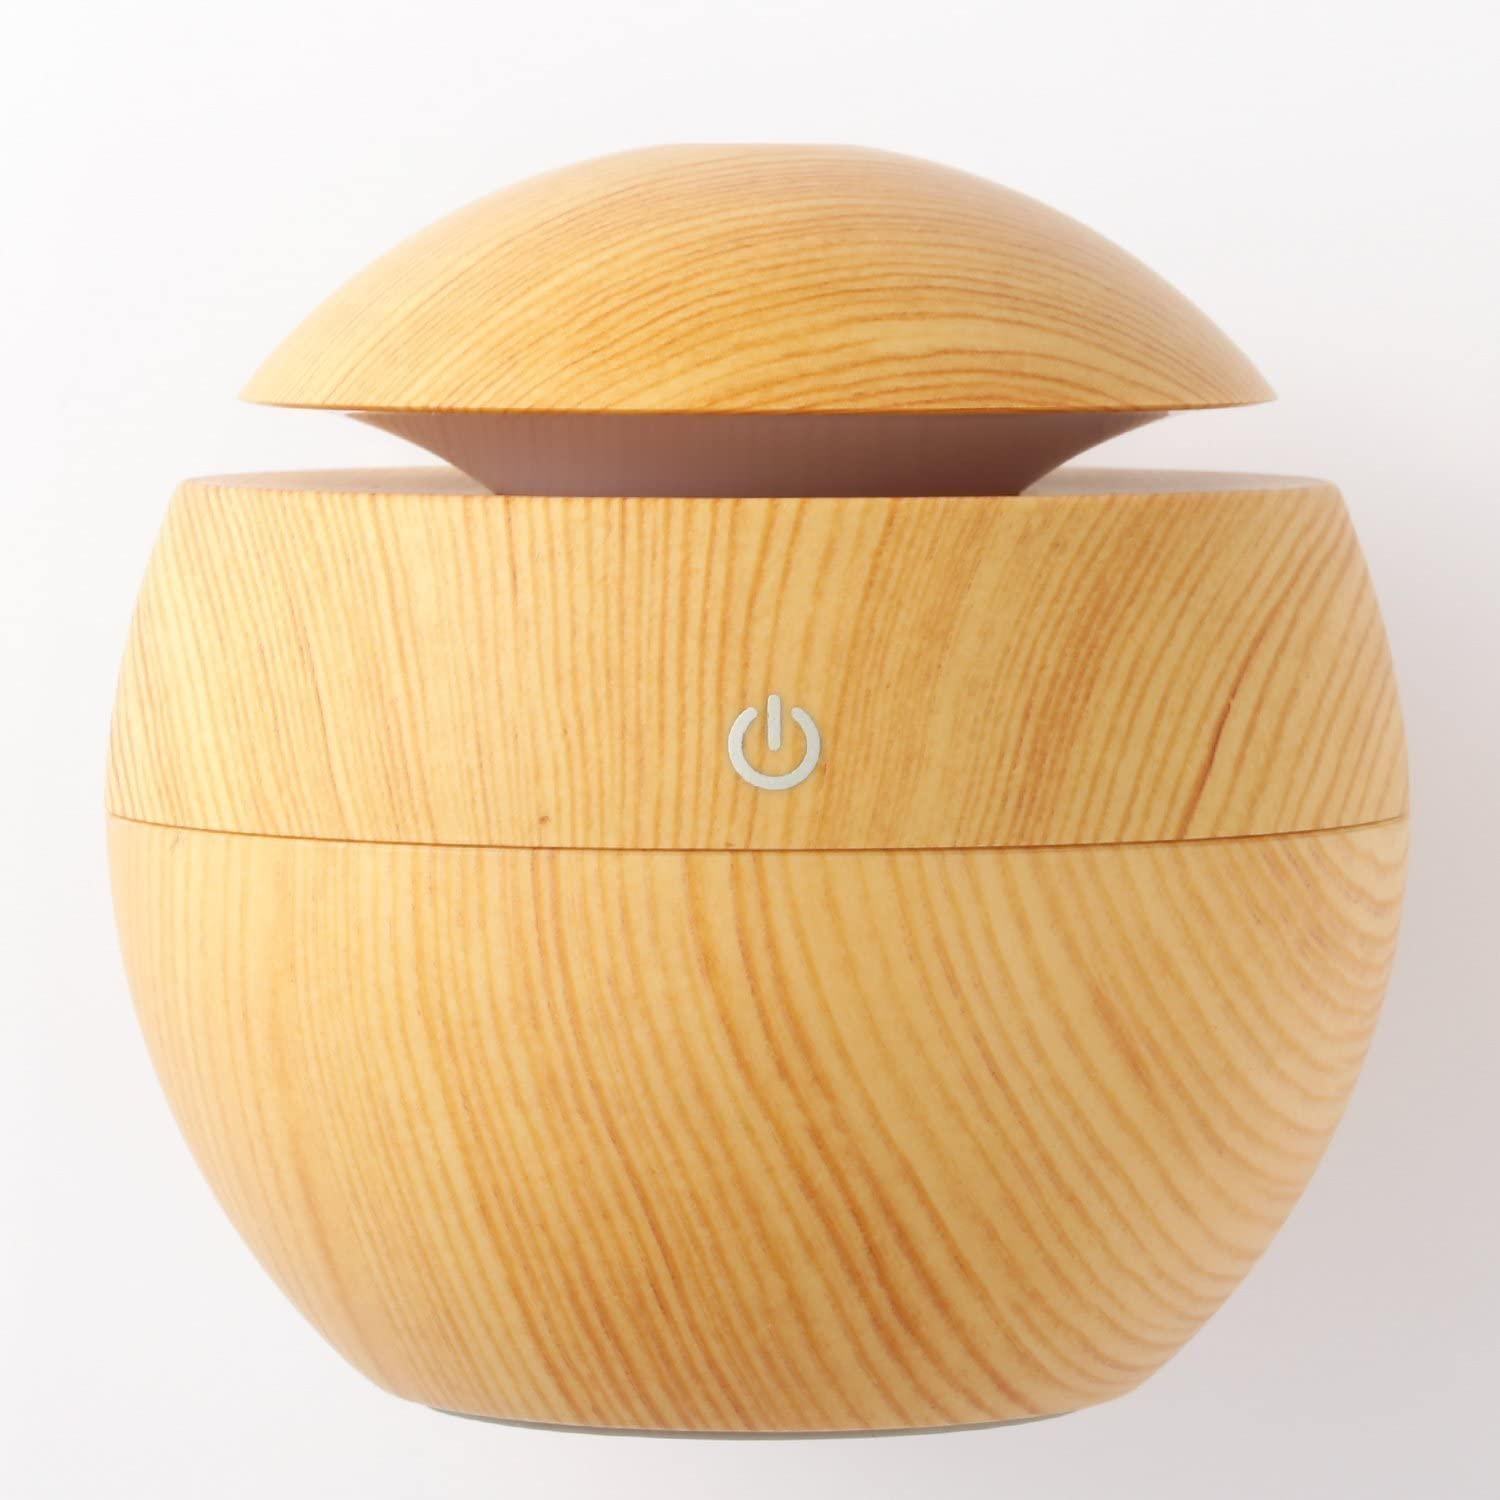 130ml USB Ultrasonic Aroma Humidifier Diffuser with color changing LED KJR 036